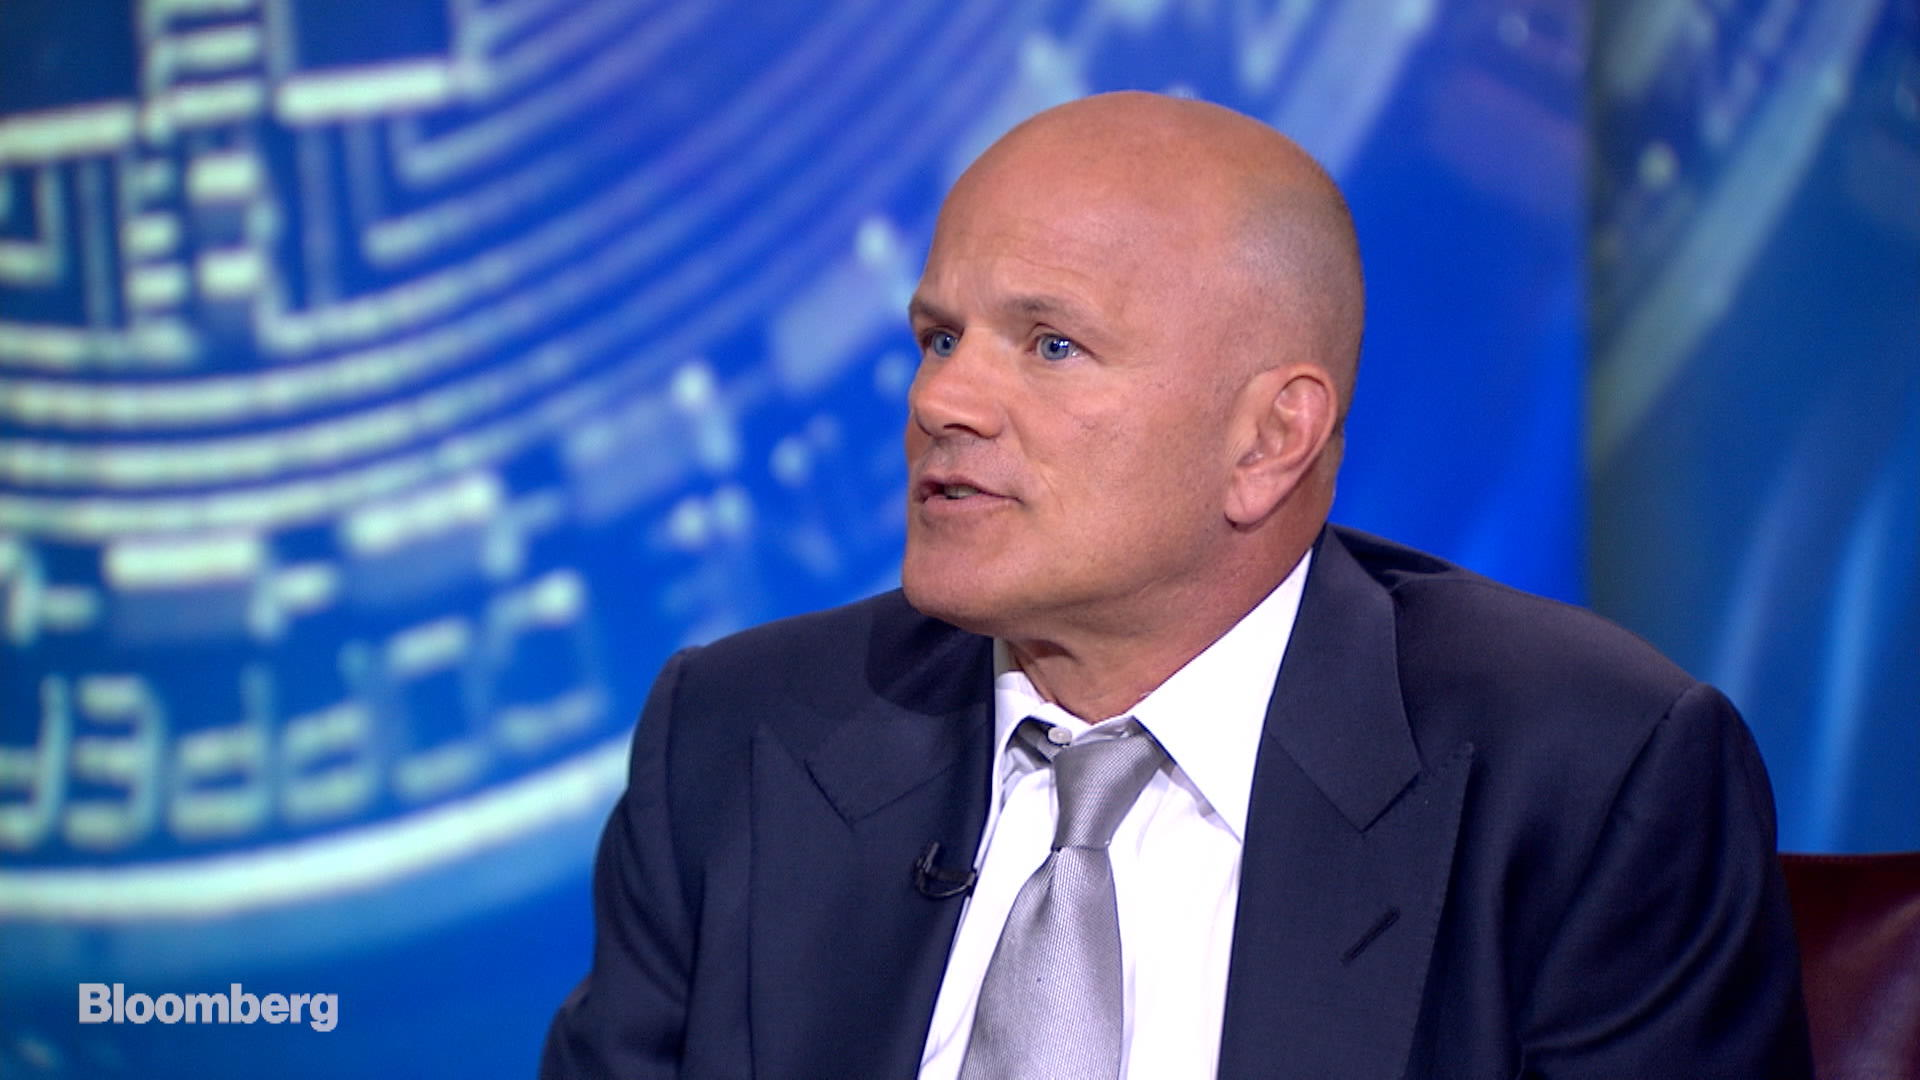 Novogratz Explains Bitcoin's Appeal to Macro Traders